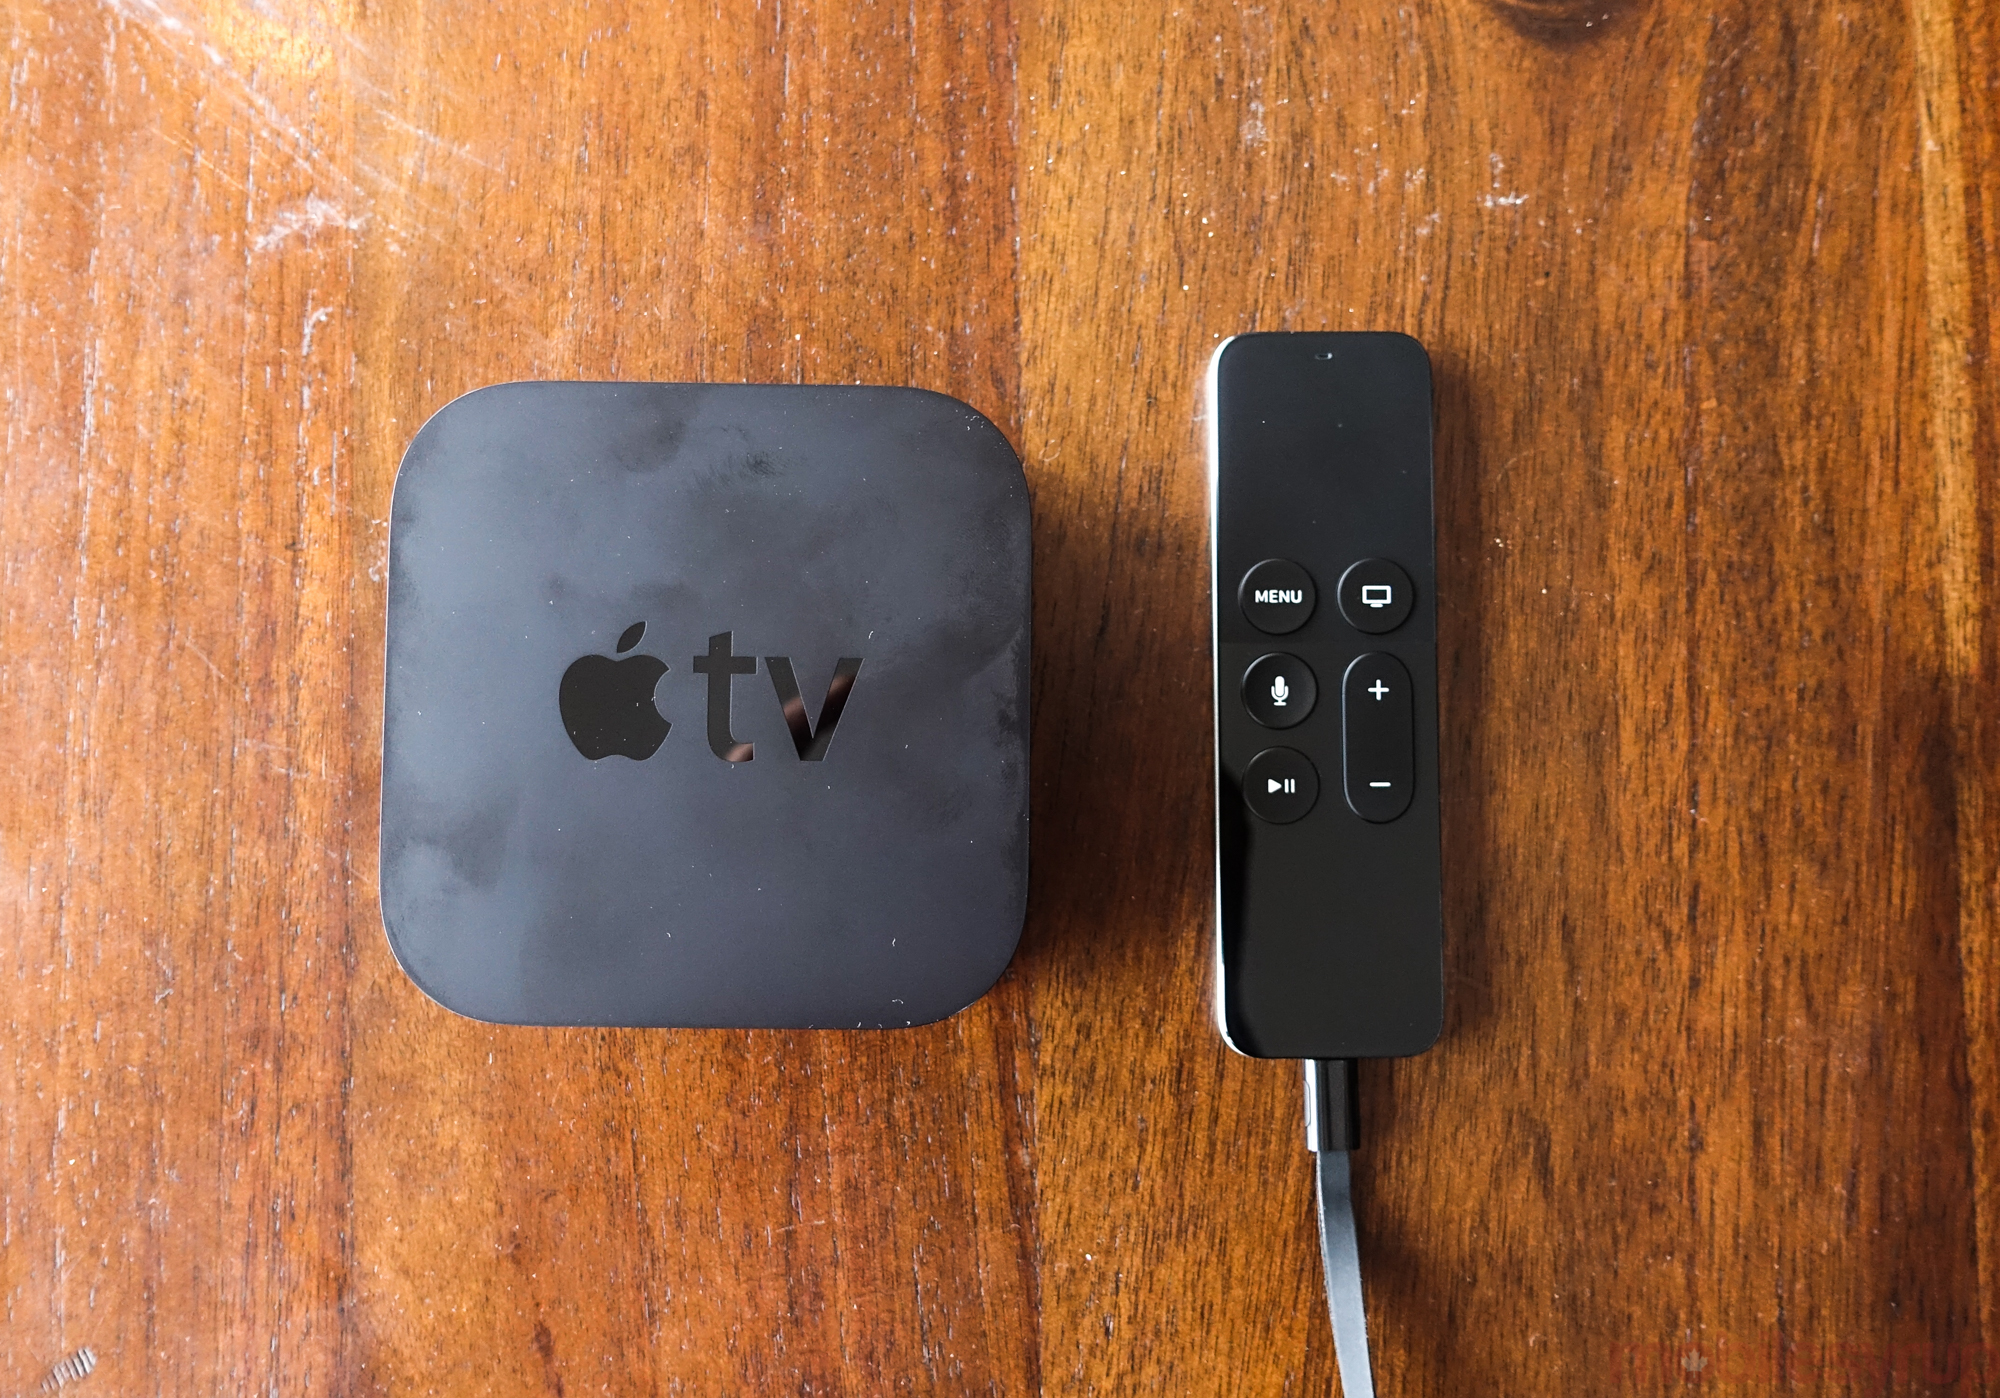 appletv4greview-01625